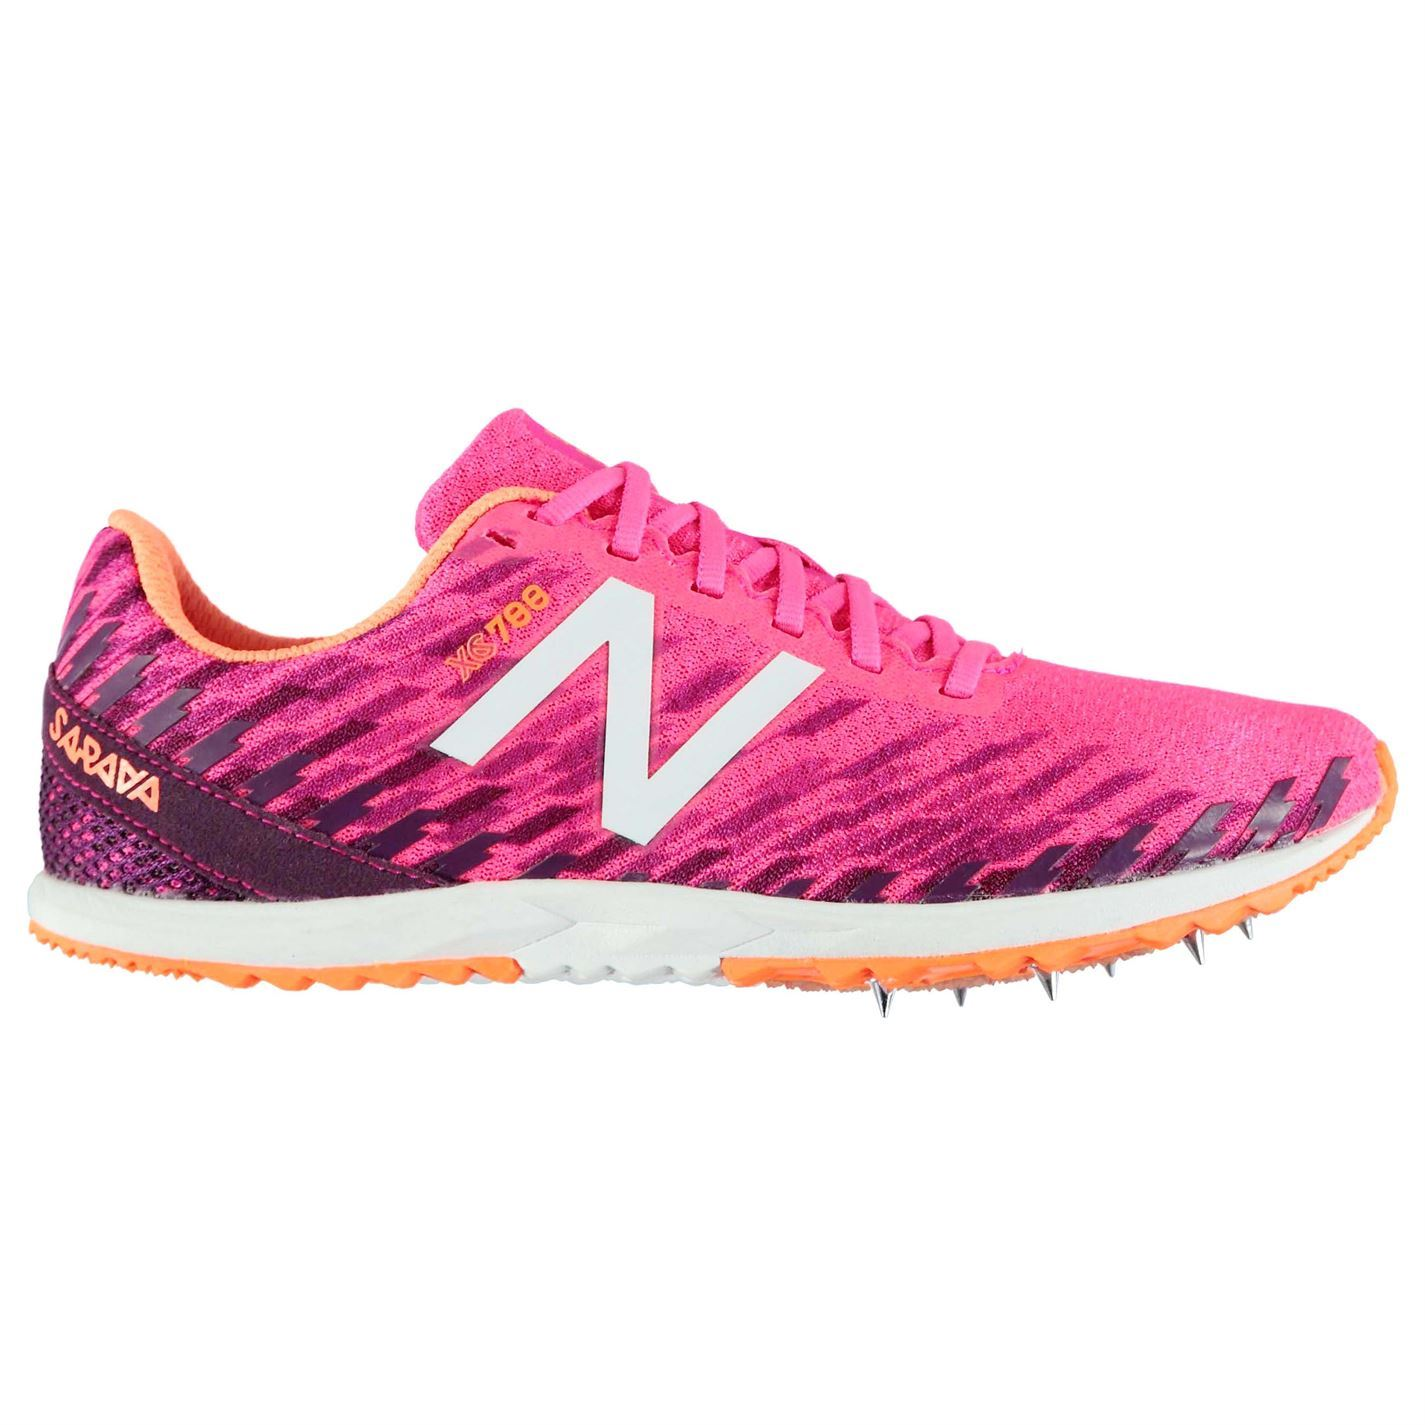 New-Balance-Womens-Trainers-Trail-Running-Shoes-Lace-Up-Lightweight-Spikes